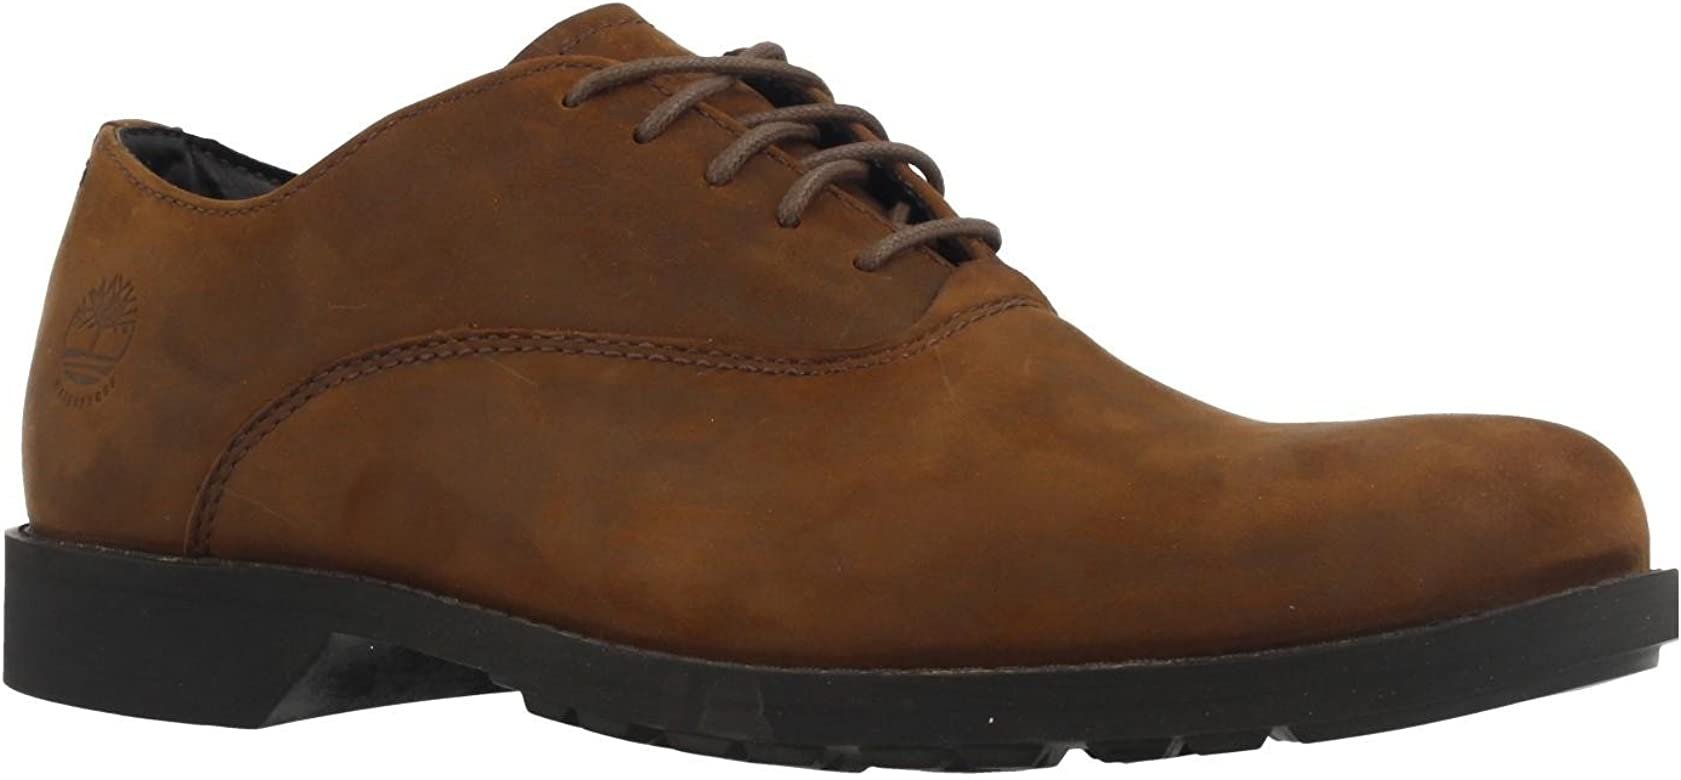 Timberland Fitchburg Waterproof, Oxfords Homme: